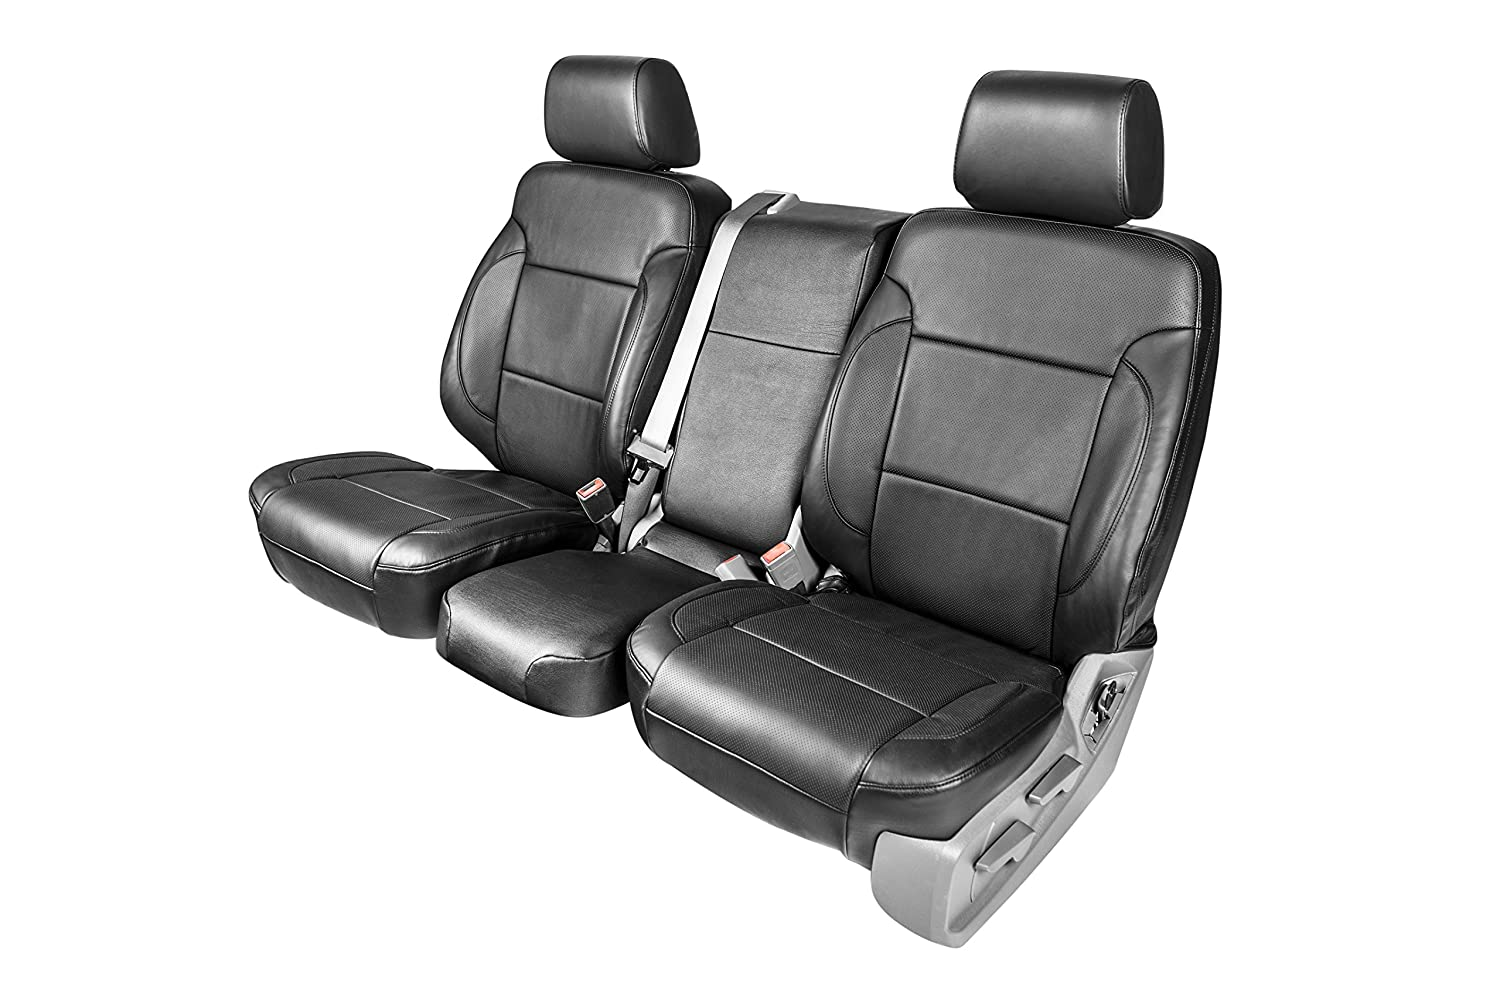 Clazzio 701511blk Black Leather Front Row Seat Cover for Dodge Ram 1500 Crew Cab